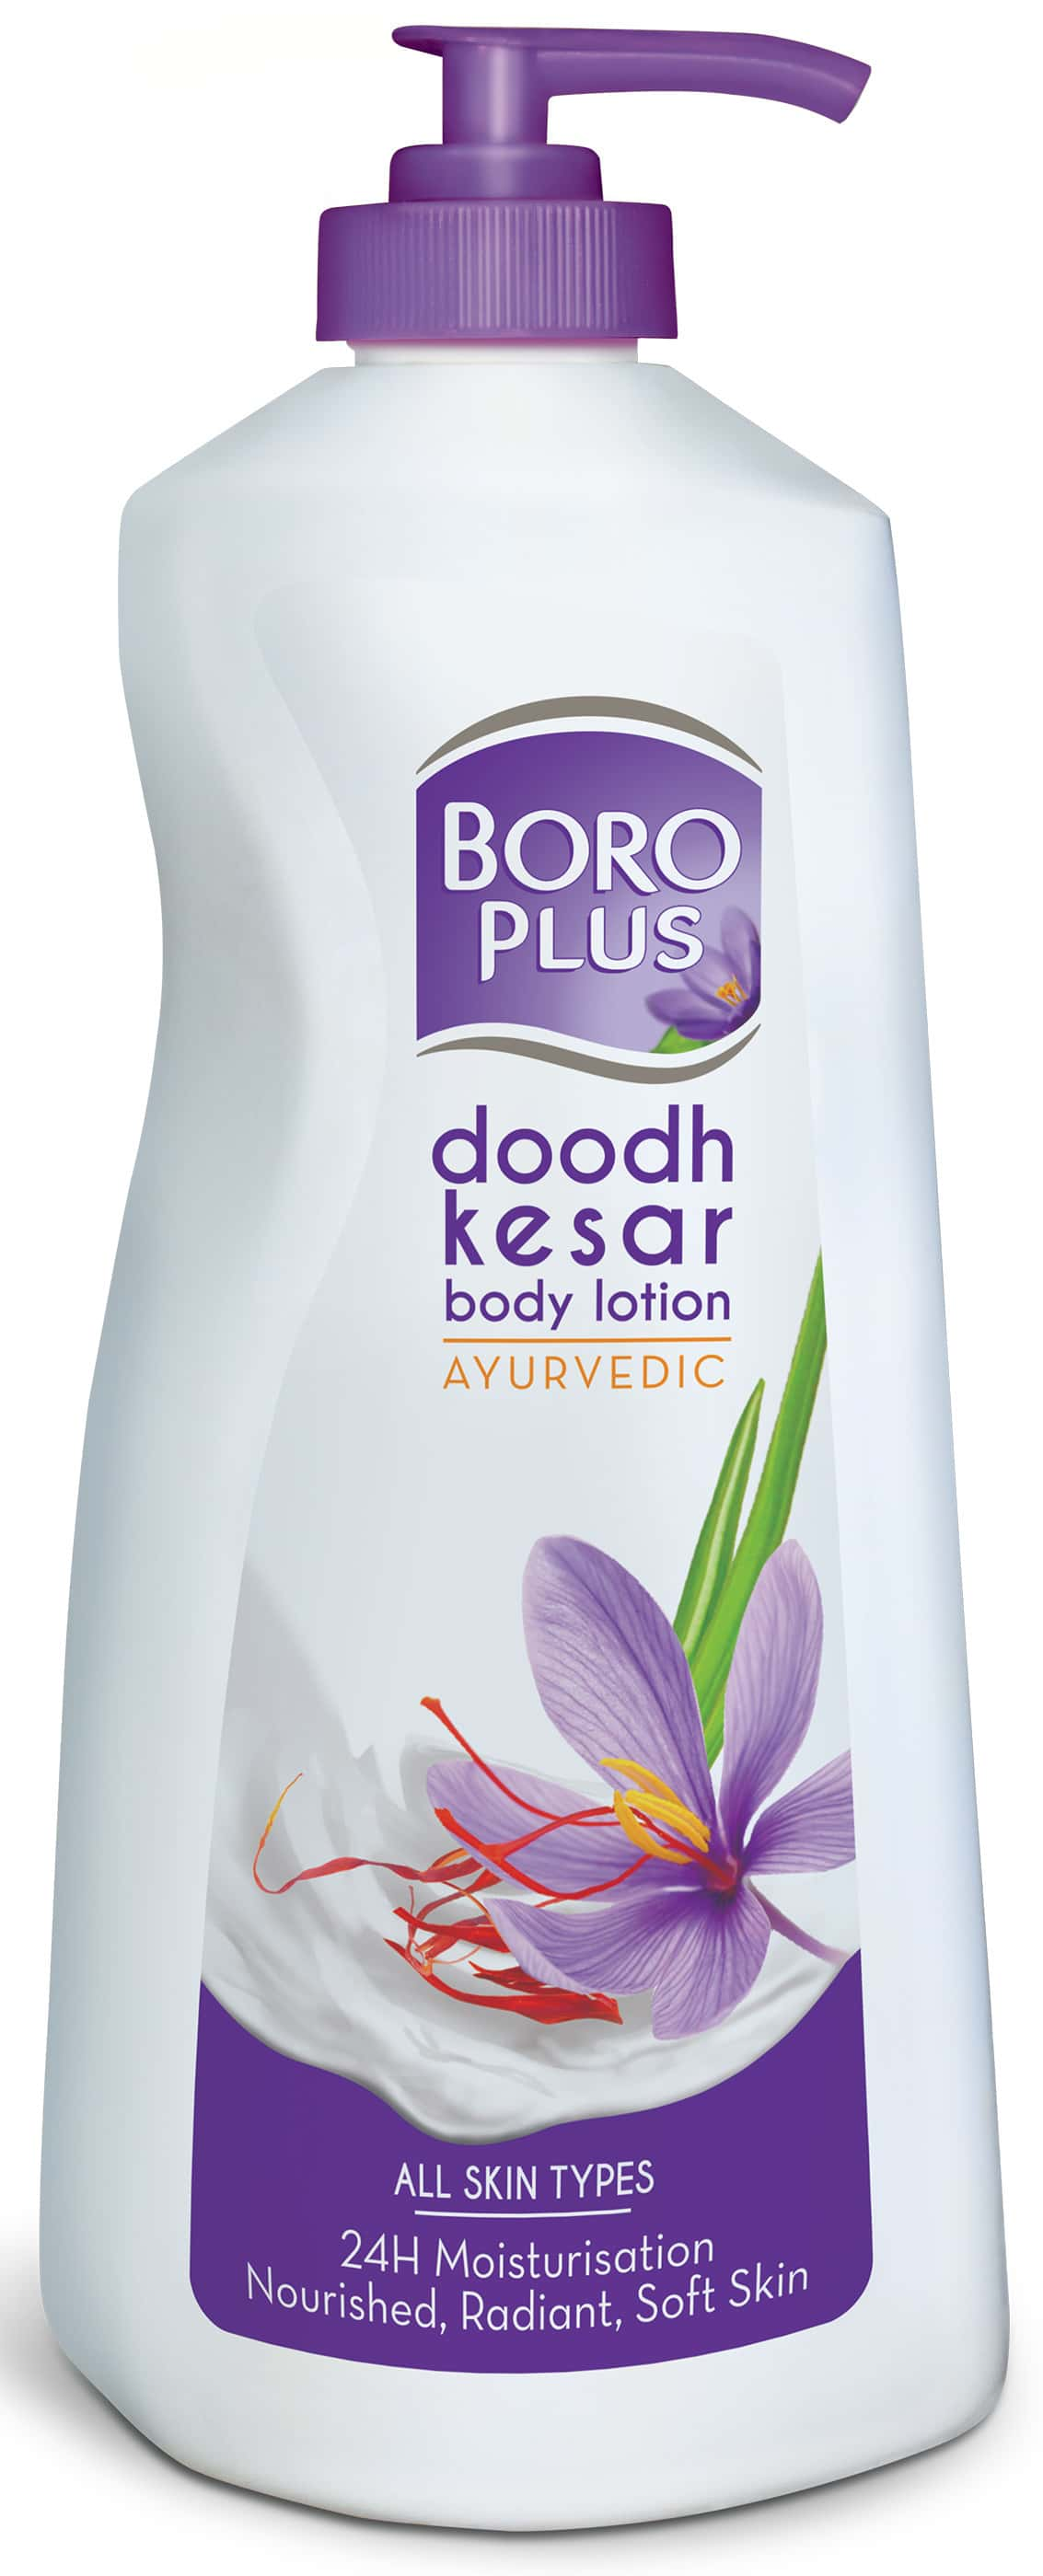 Boro Plus Doodh Kesar Body Lotion Bottle Of 400 Ml